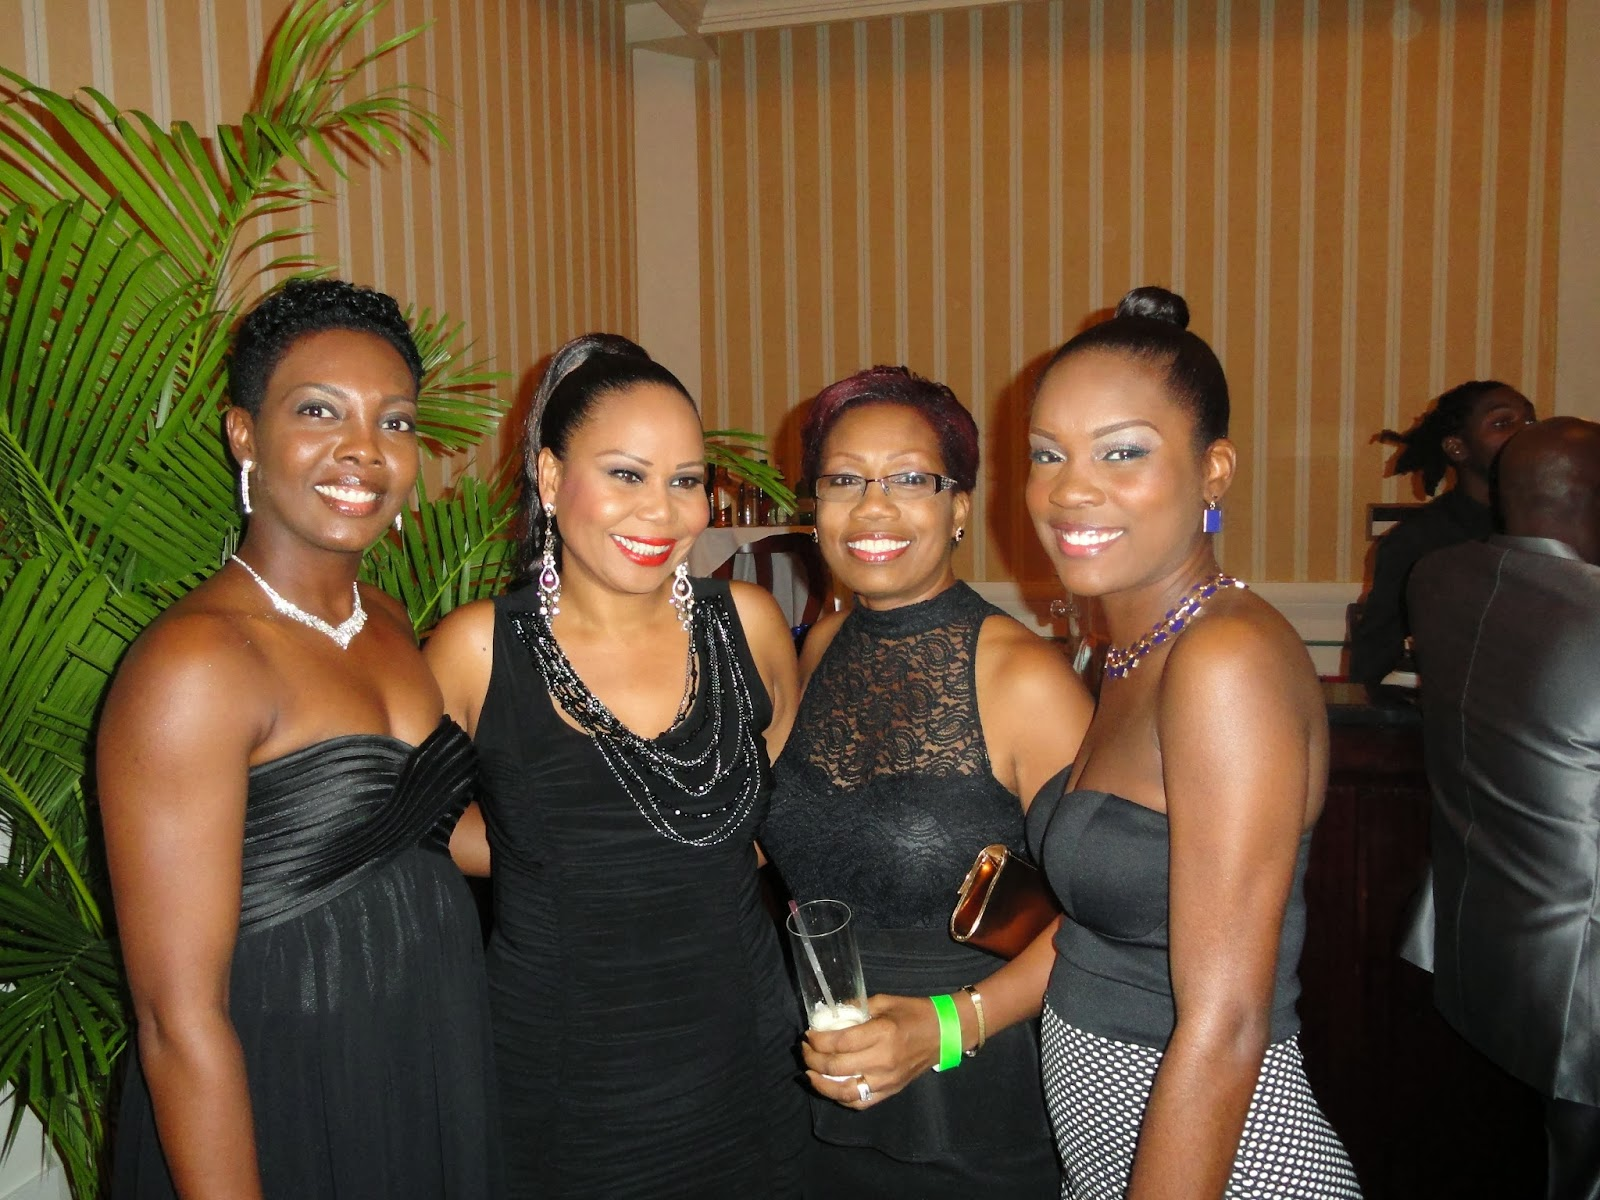 25 Annual SUNSHINE Awards Ball - Oct. 12, 2013 - Tobago - All Photos by Ian Lively